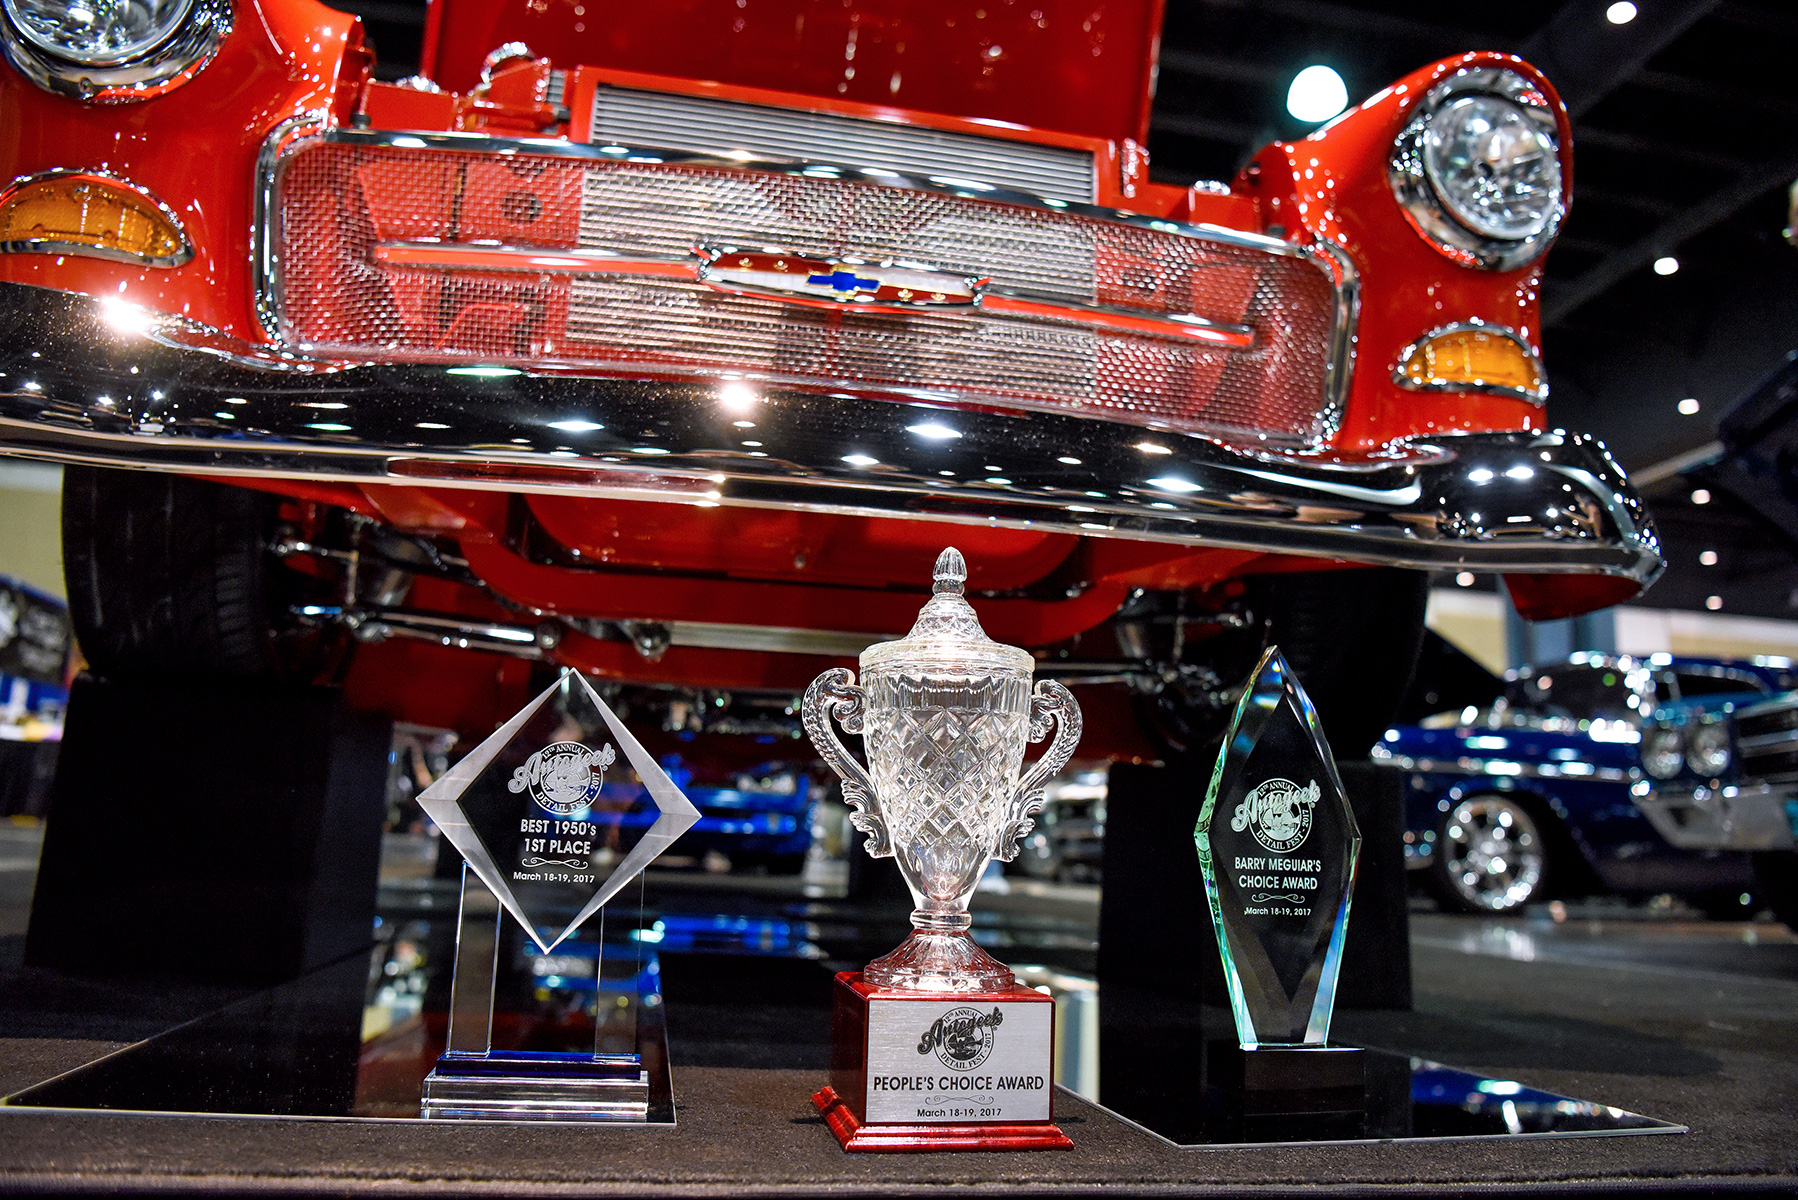 Cars For Under 5000 >> CRM-55 Wins Three Awards at Autogeek's Detail Fest & Car Show Debut